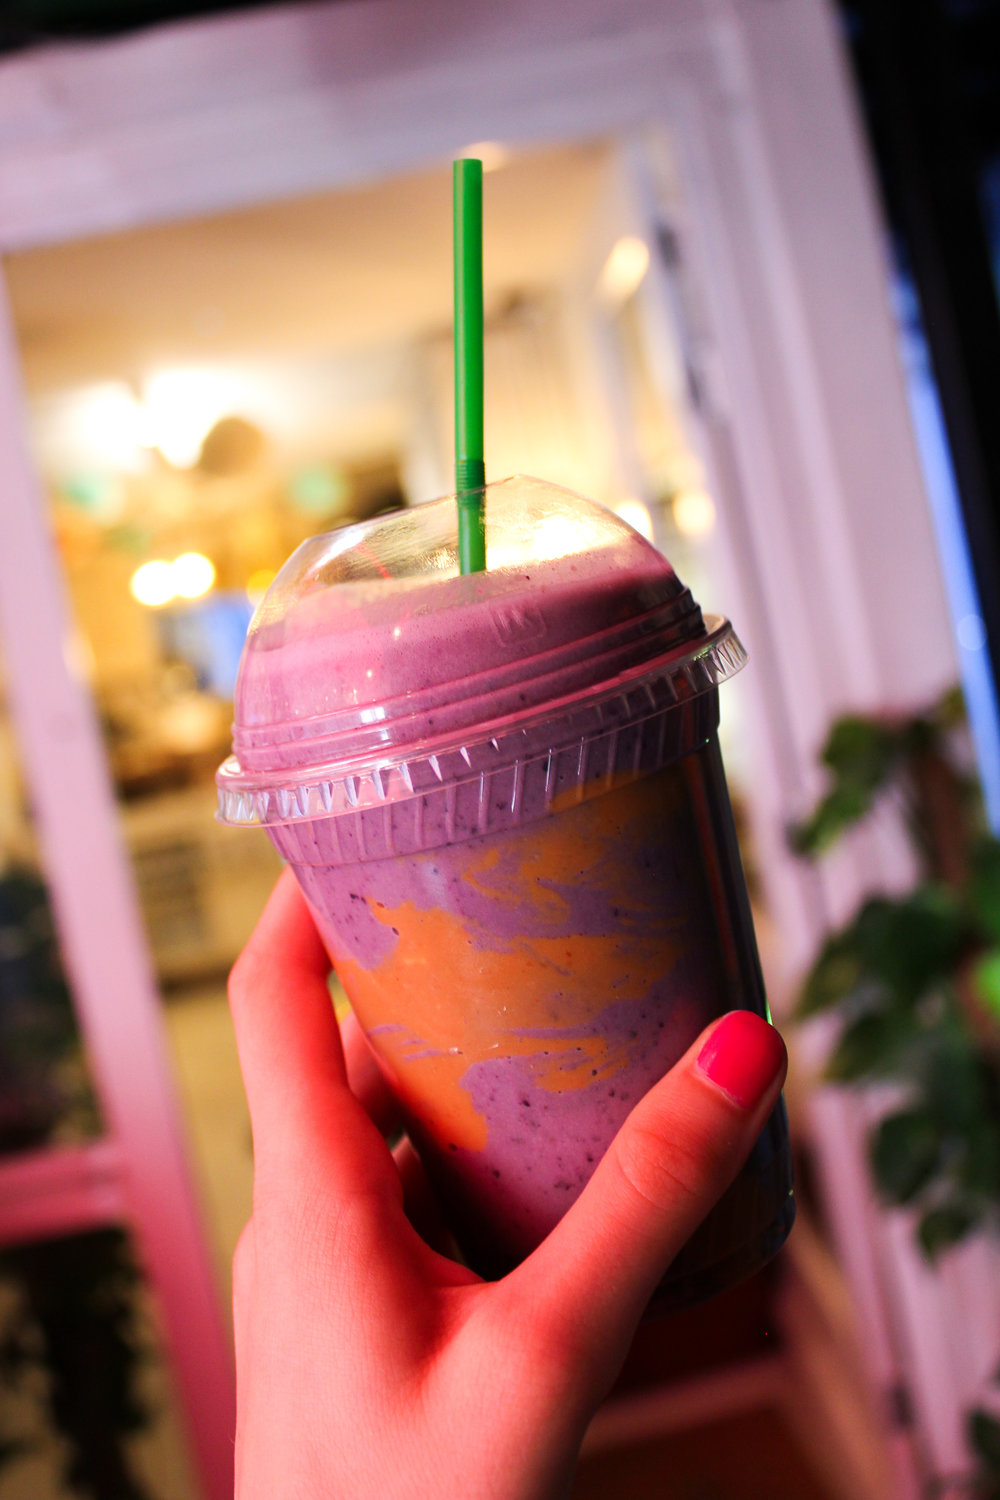 6th August - blueberry banana peanut butter smoothie in the heart of London (it was soooo good!)